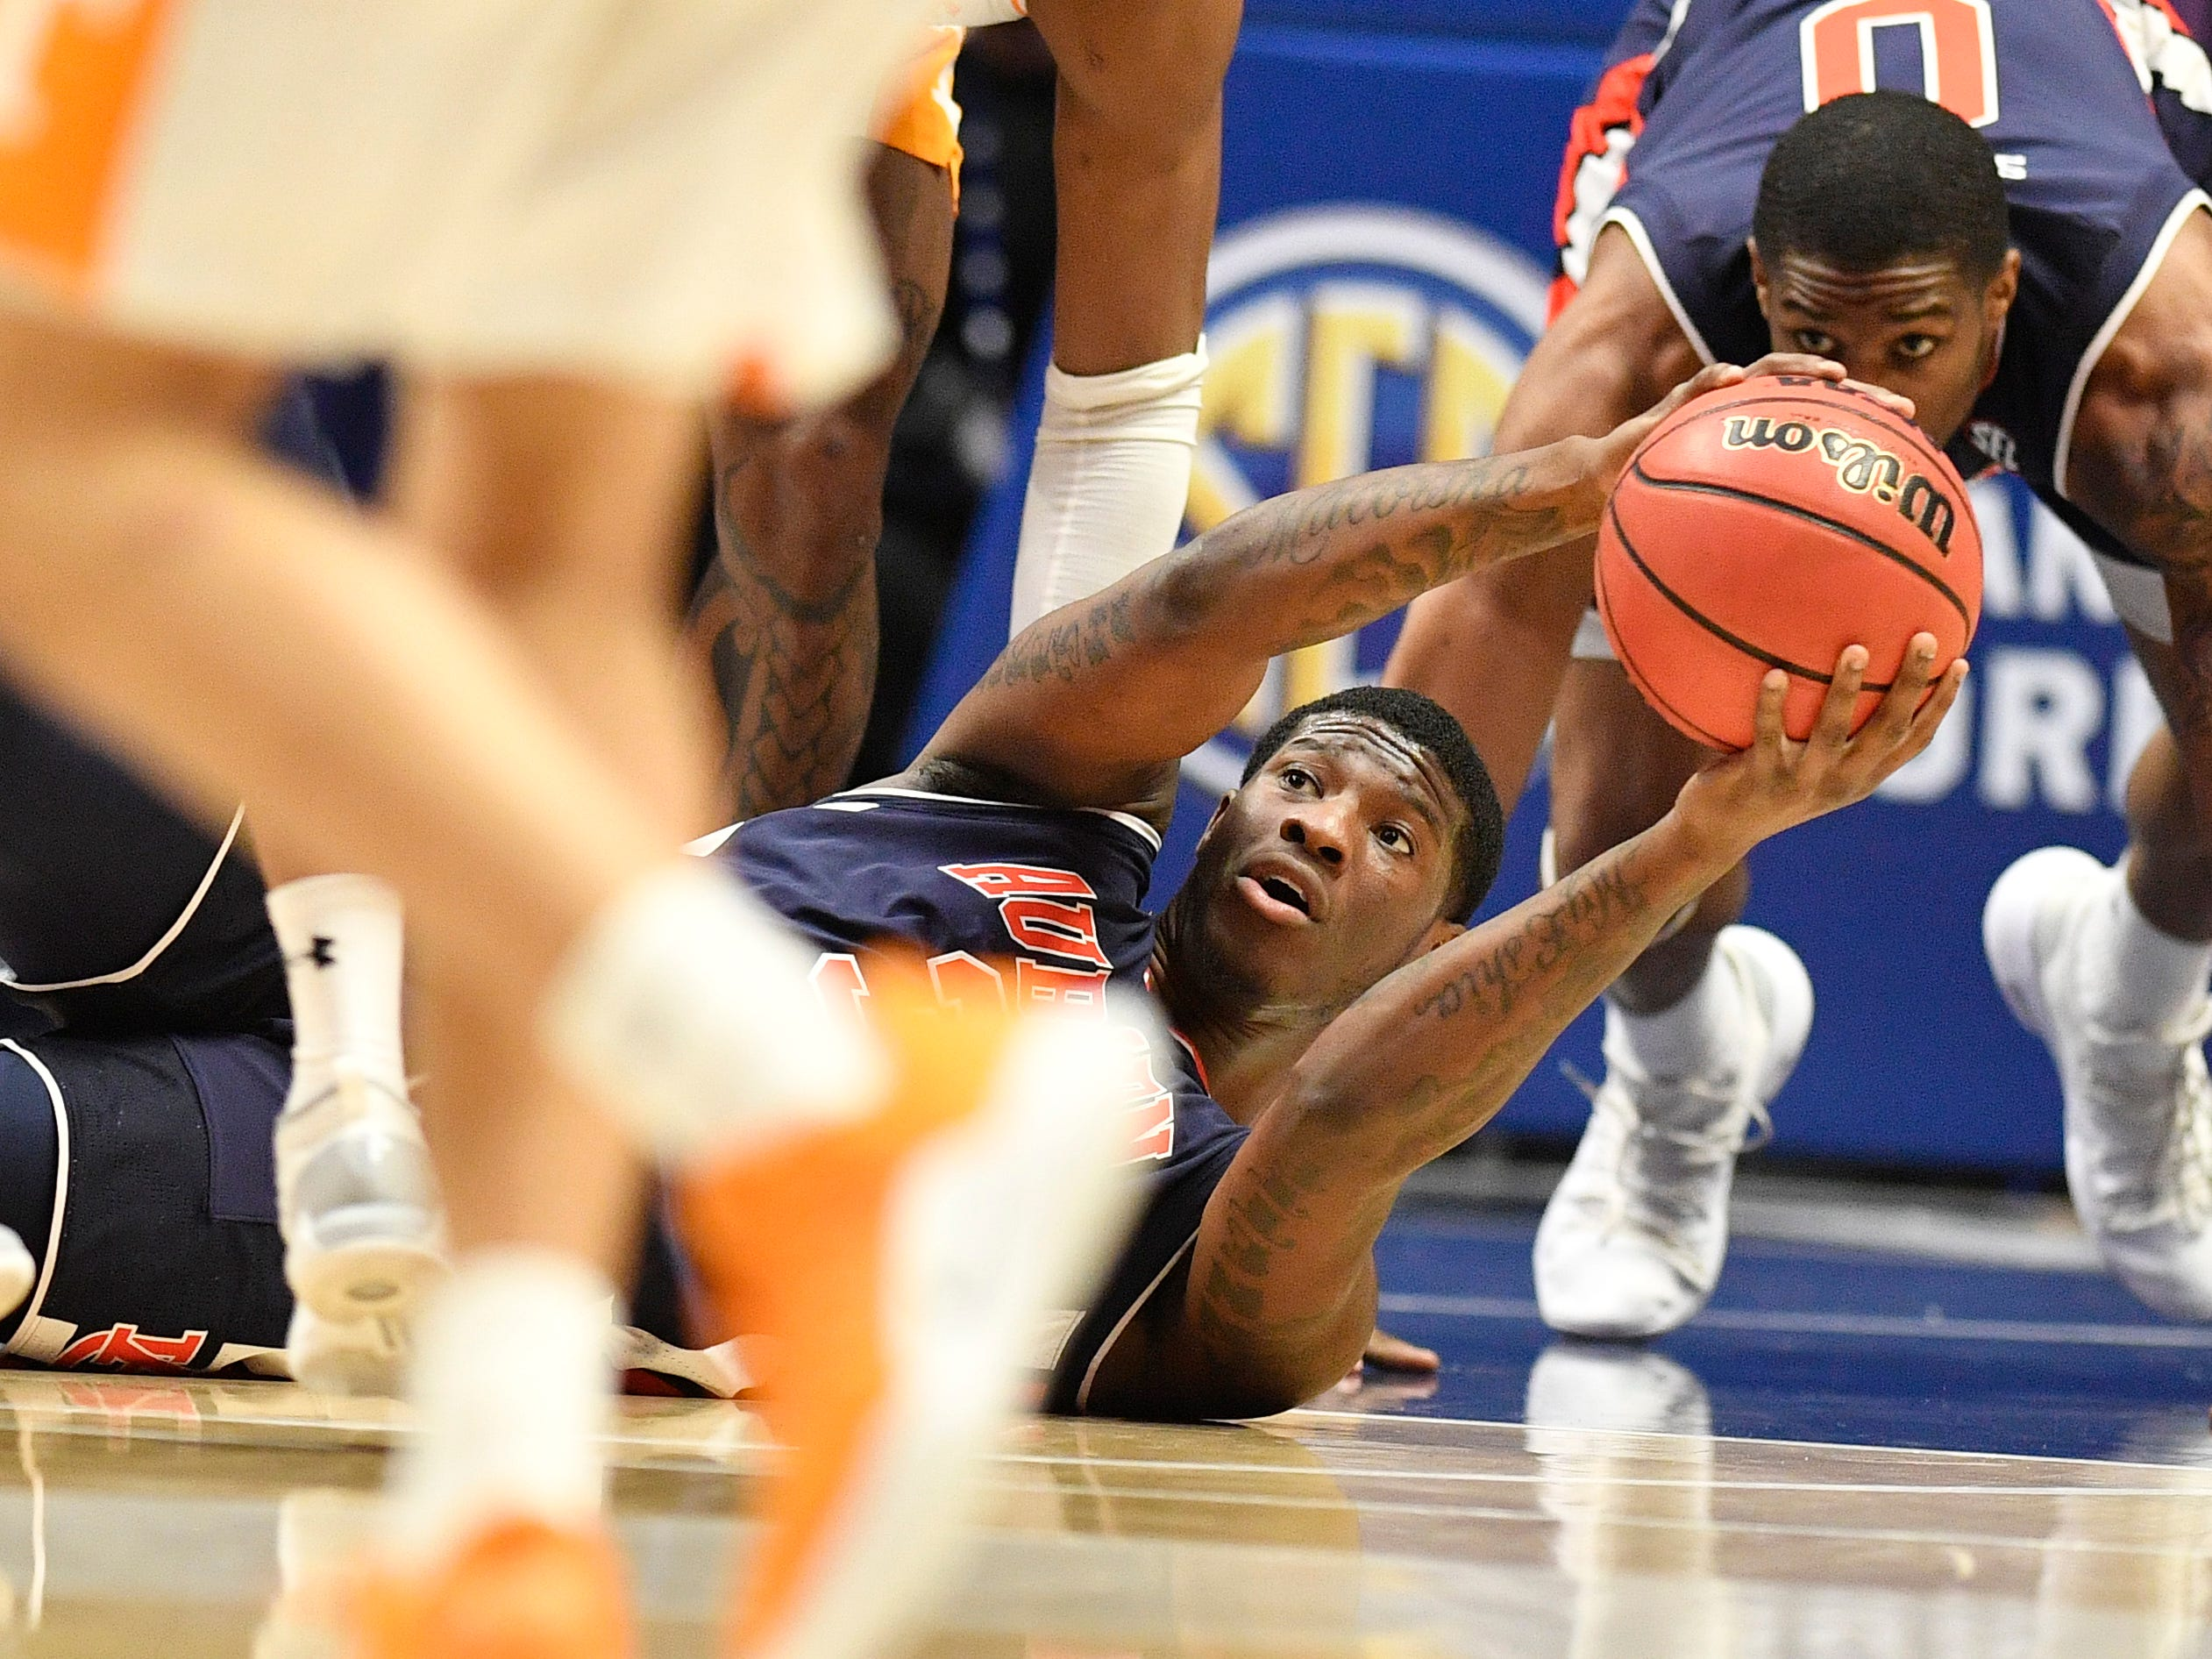 Auburn forward Danjel Purifoy (3) recovers a loose ball during the first half of the SEC Men's Basketball Tournament championship game against Tennessee at Bridgestone Arena in Nashville, Tenn., Sunday, March 17, 2019.